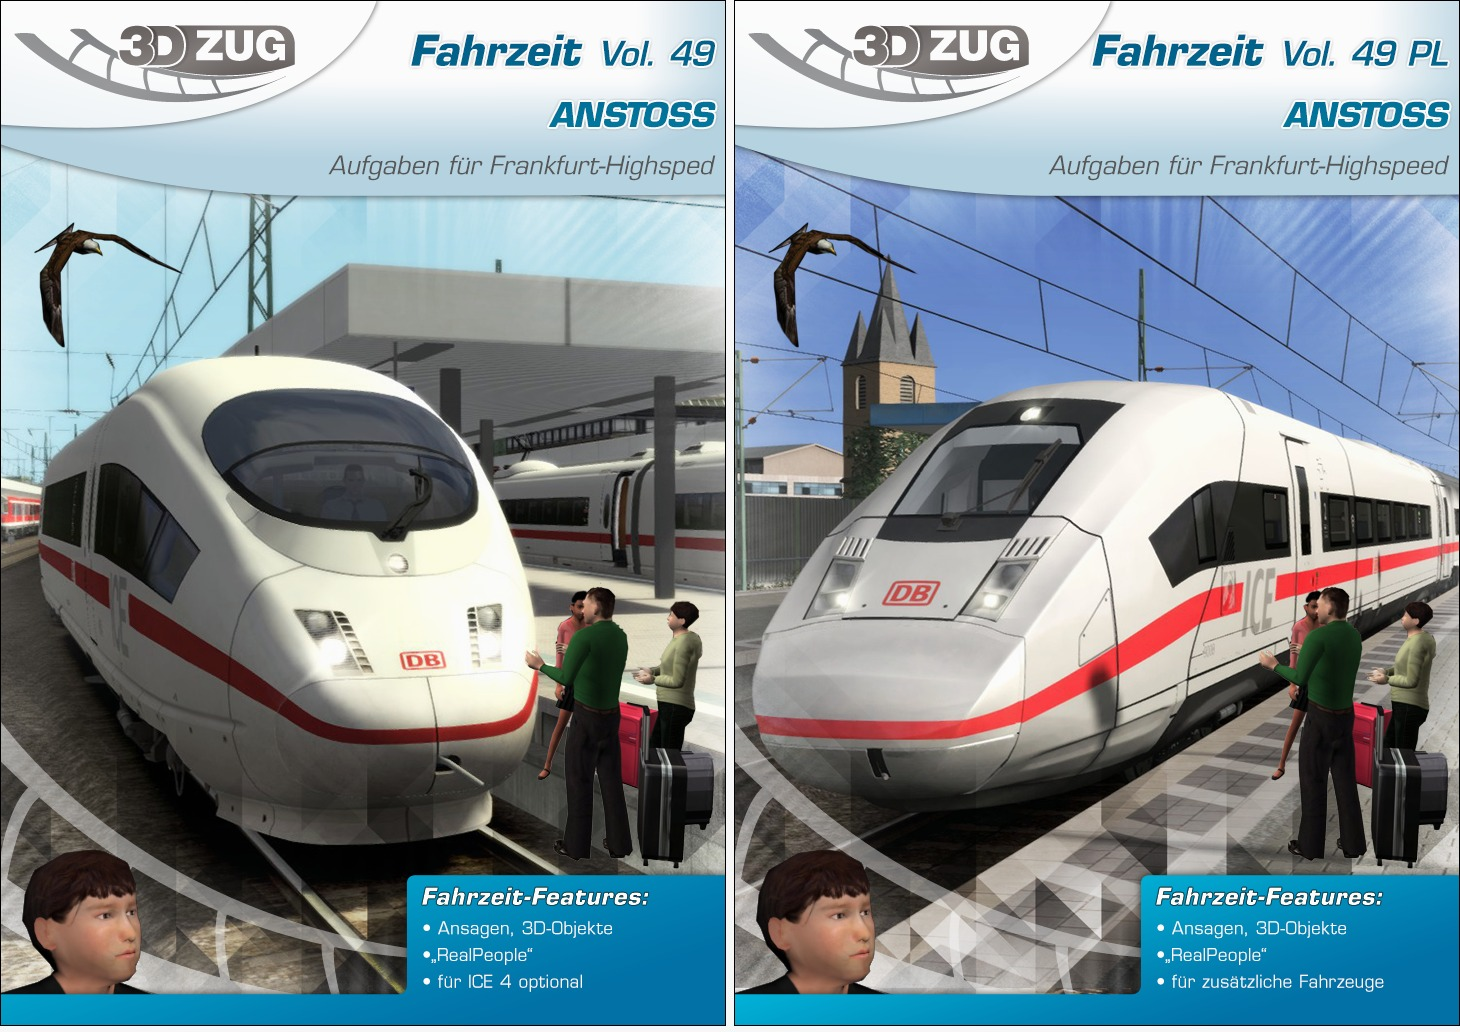 3DZUG Fahrzeit Vol. 49 'ANSTOSS' (in Standard & ProLine) is nu beschikbaar